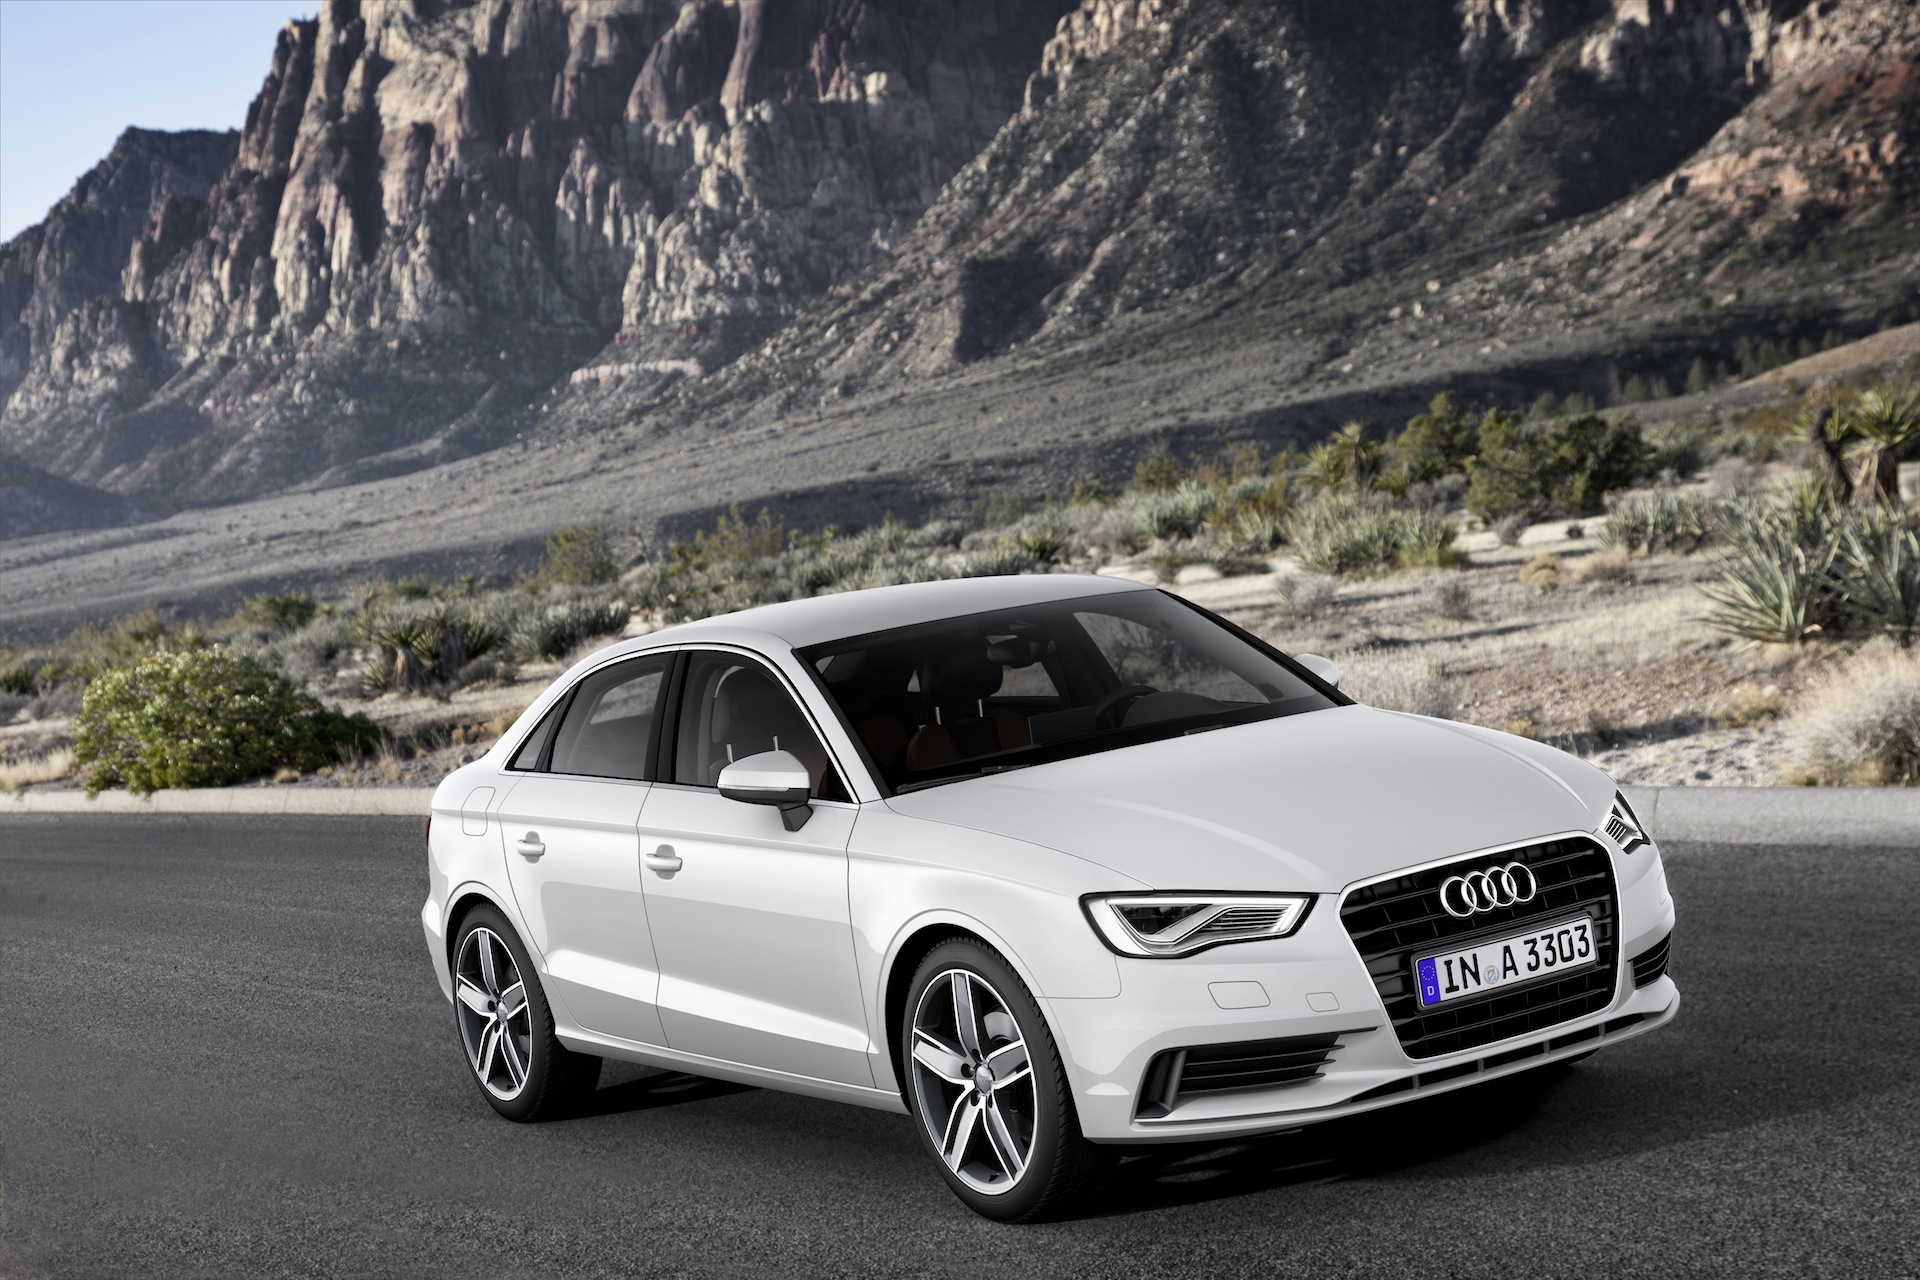 2015 audi a3 priced from $30,795